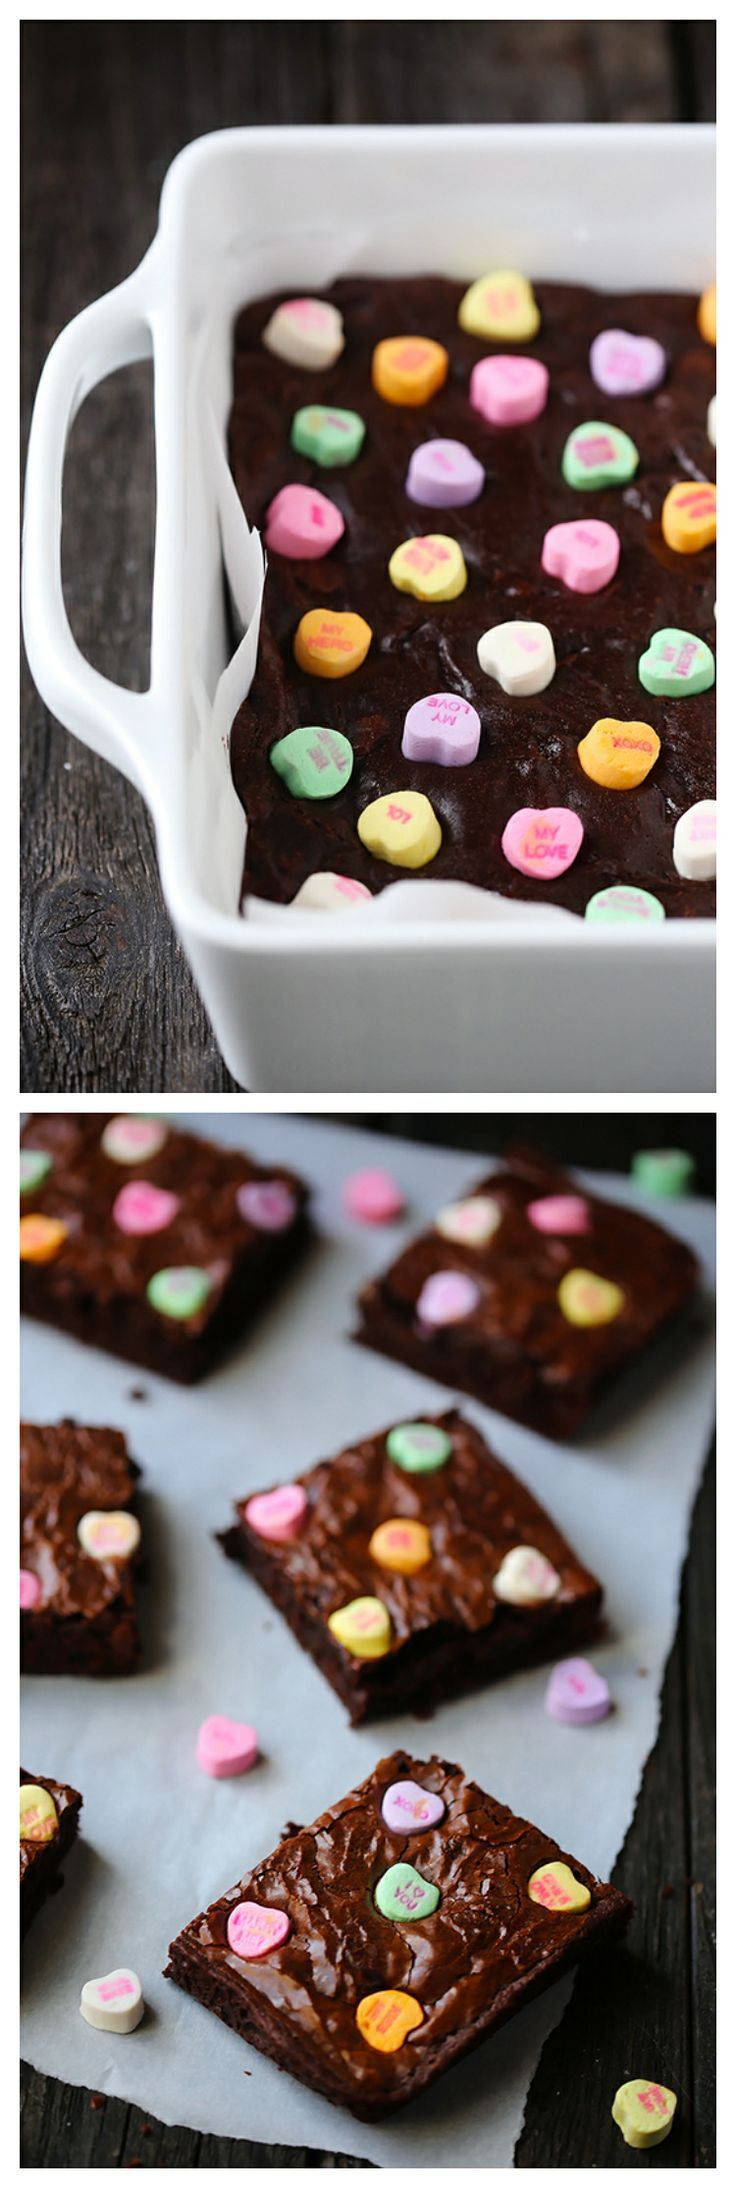 Valentine's day DIY dessert idea - Brownies with candy hearts? Yes, please!